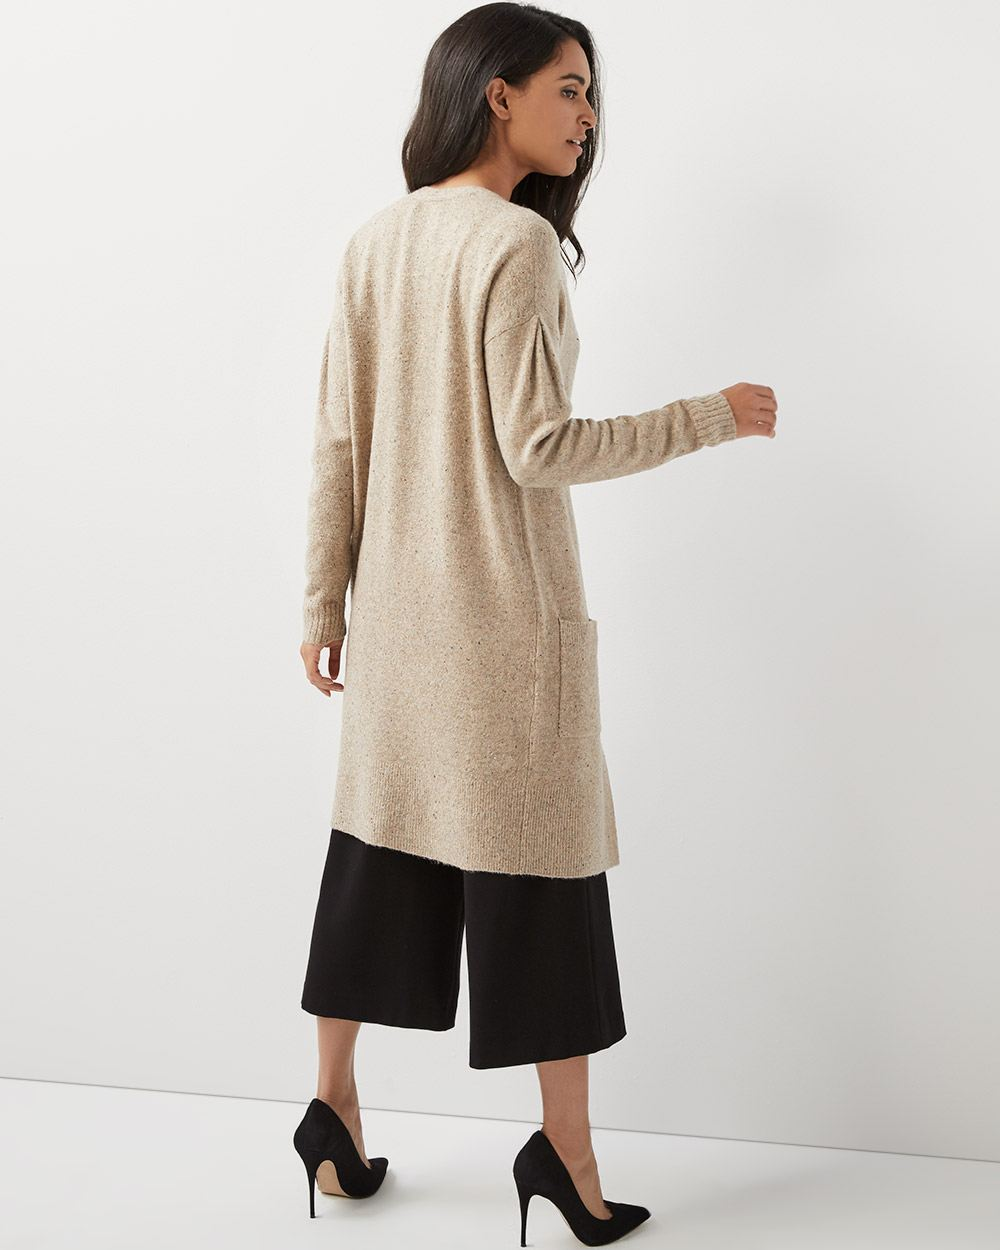 C&G Spongy knit duster cardigan